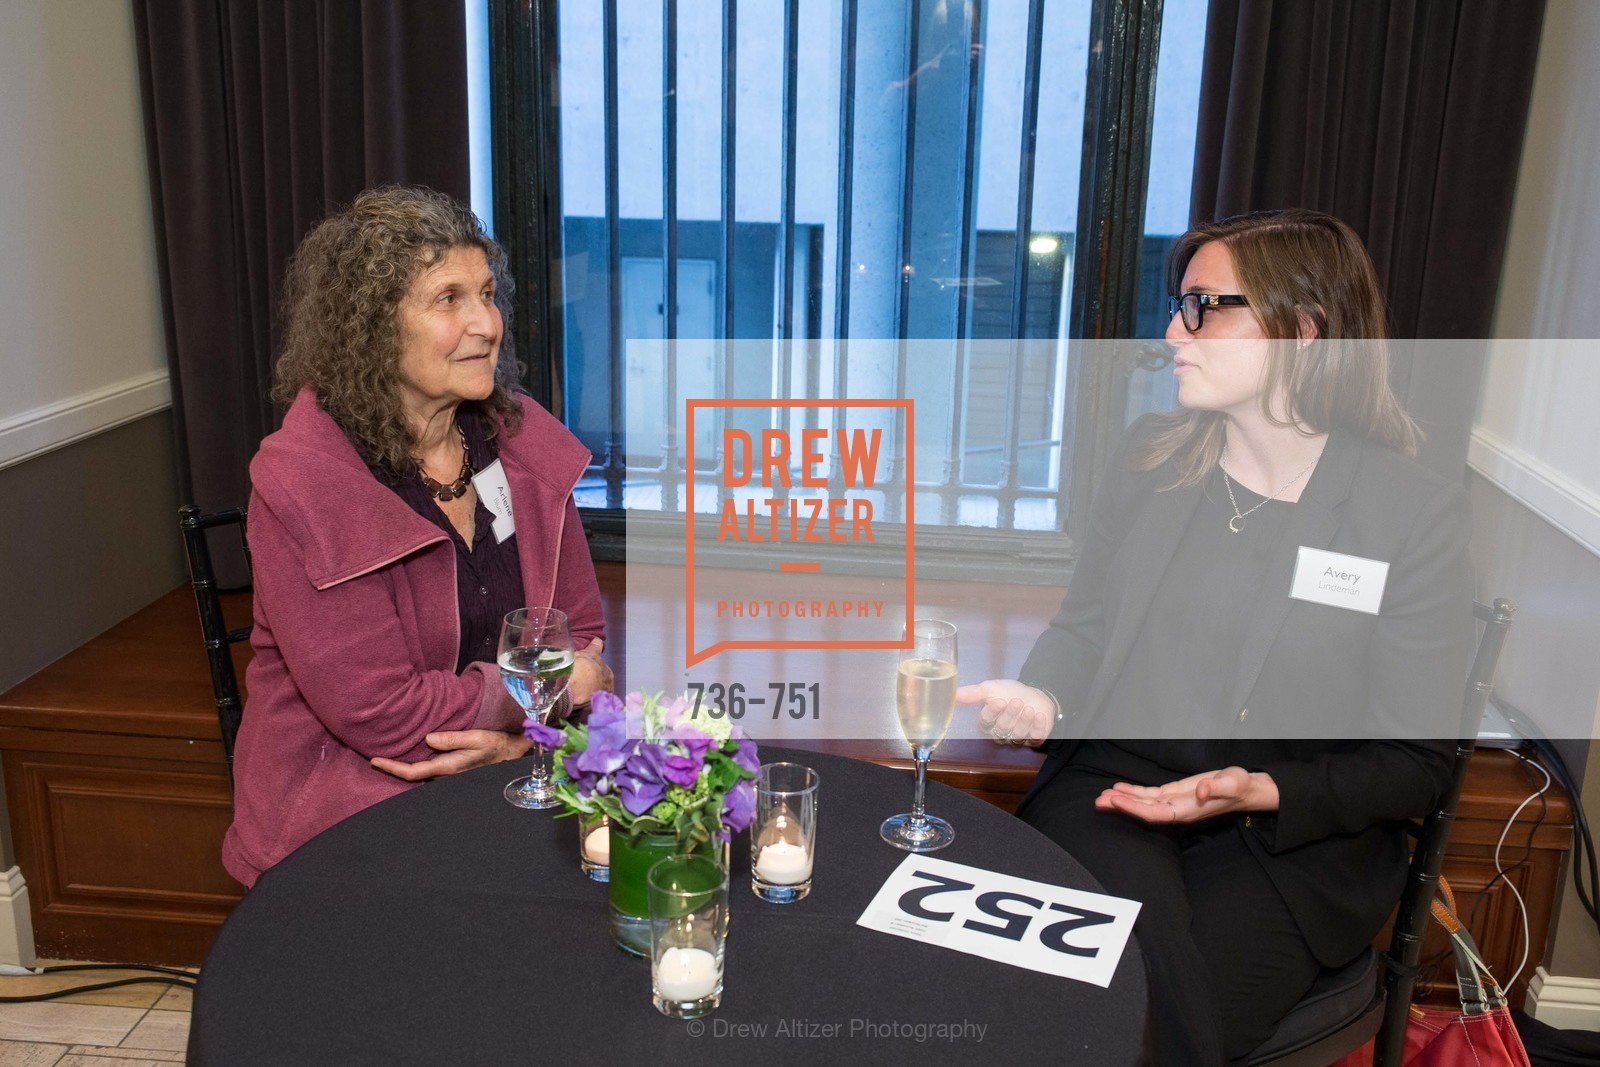 Arlene Blum, Avery Lindeman, CENTER FOR ENVIRONMENTAL HEALTH (CEH) 2015 Gala, US, May 28th, 2015,Drew Altizer, Drew Altizer Photography, full-service agency, private events, San Francisco photographer, photographer california